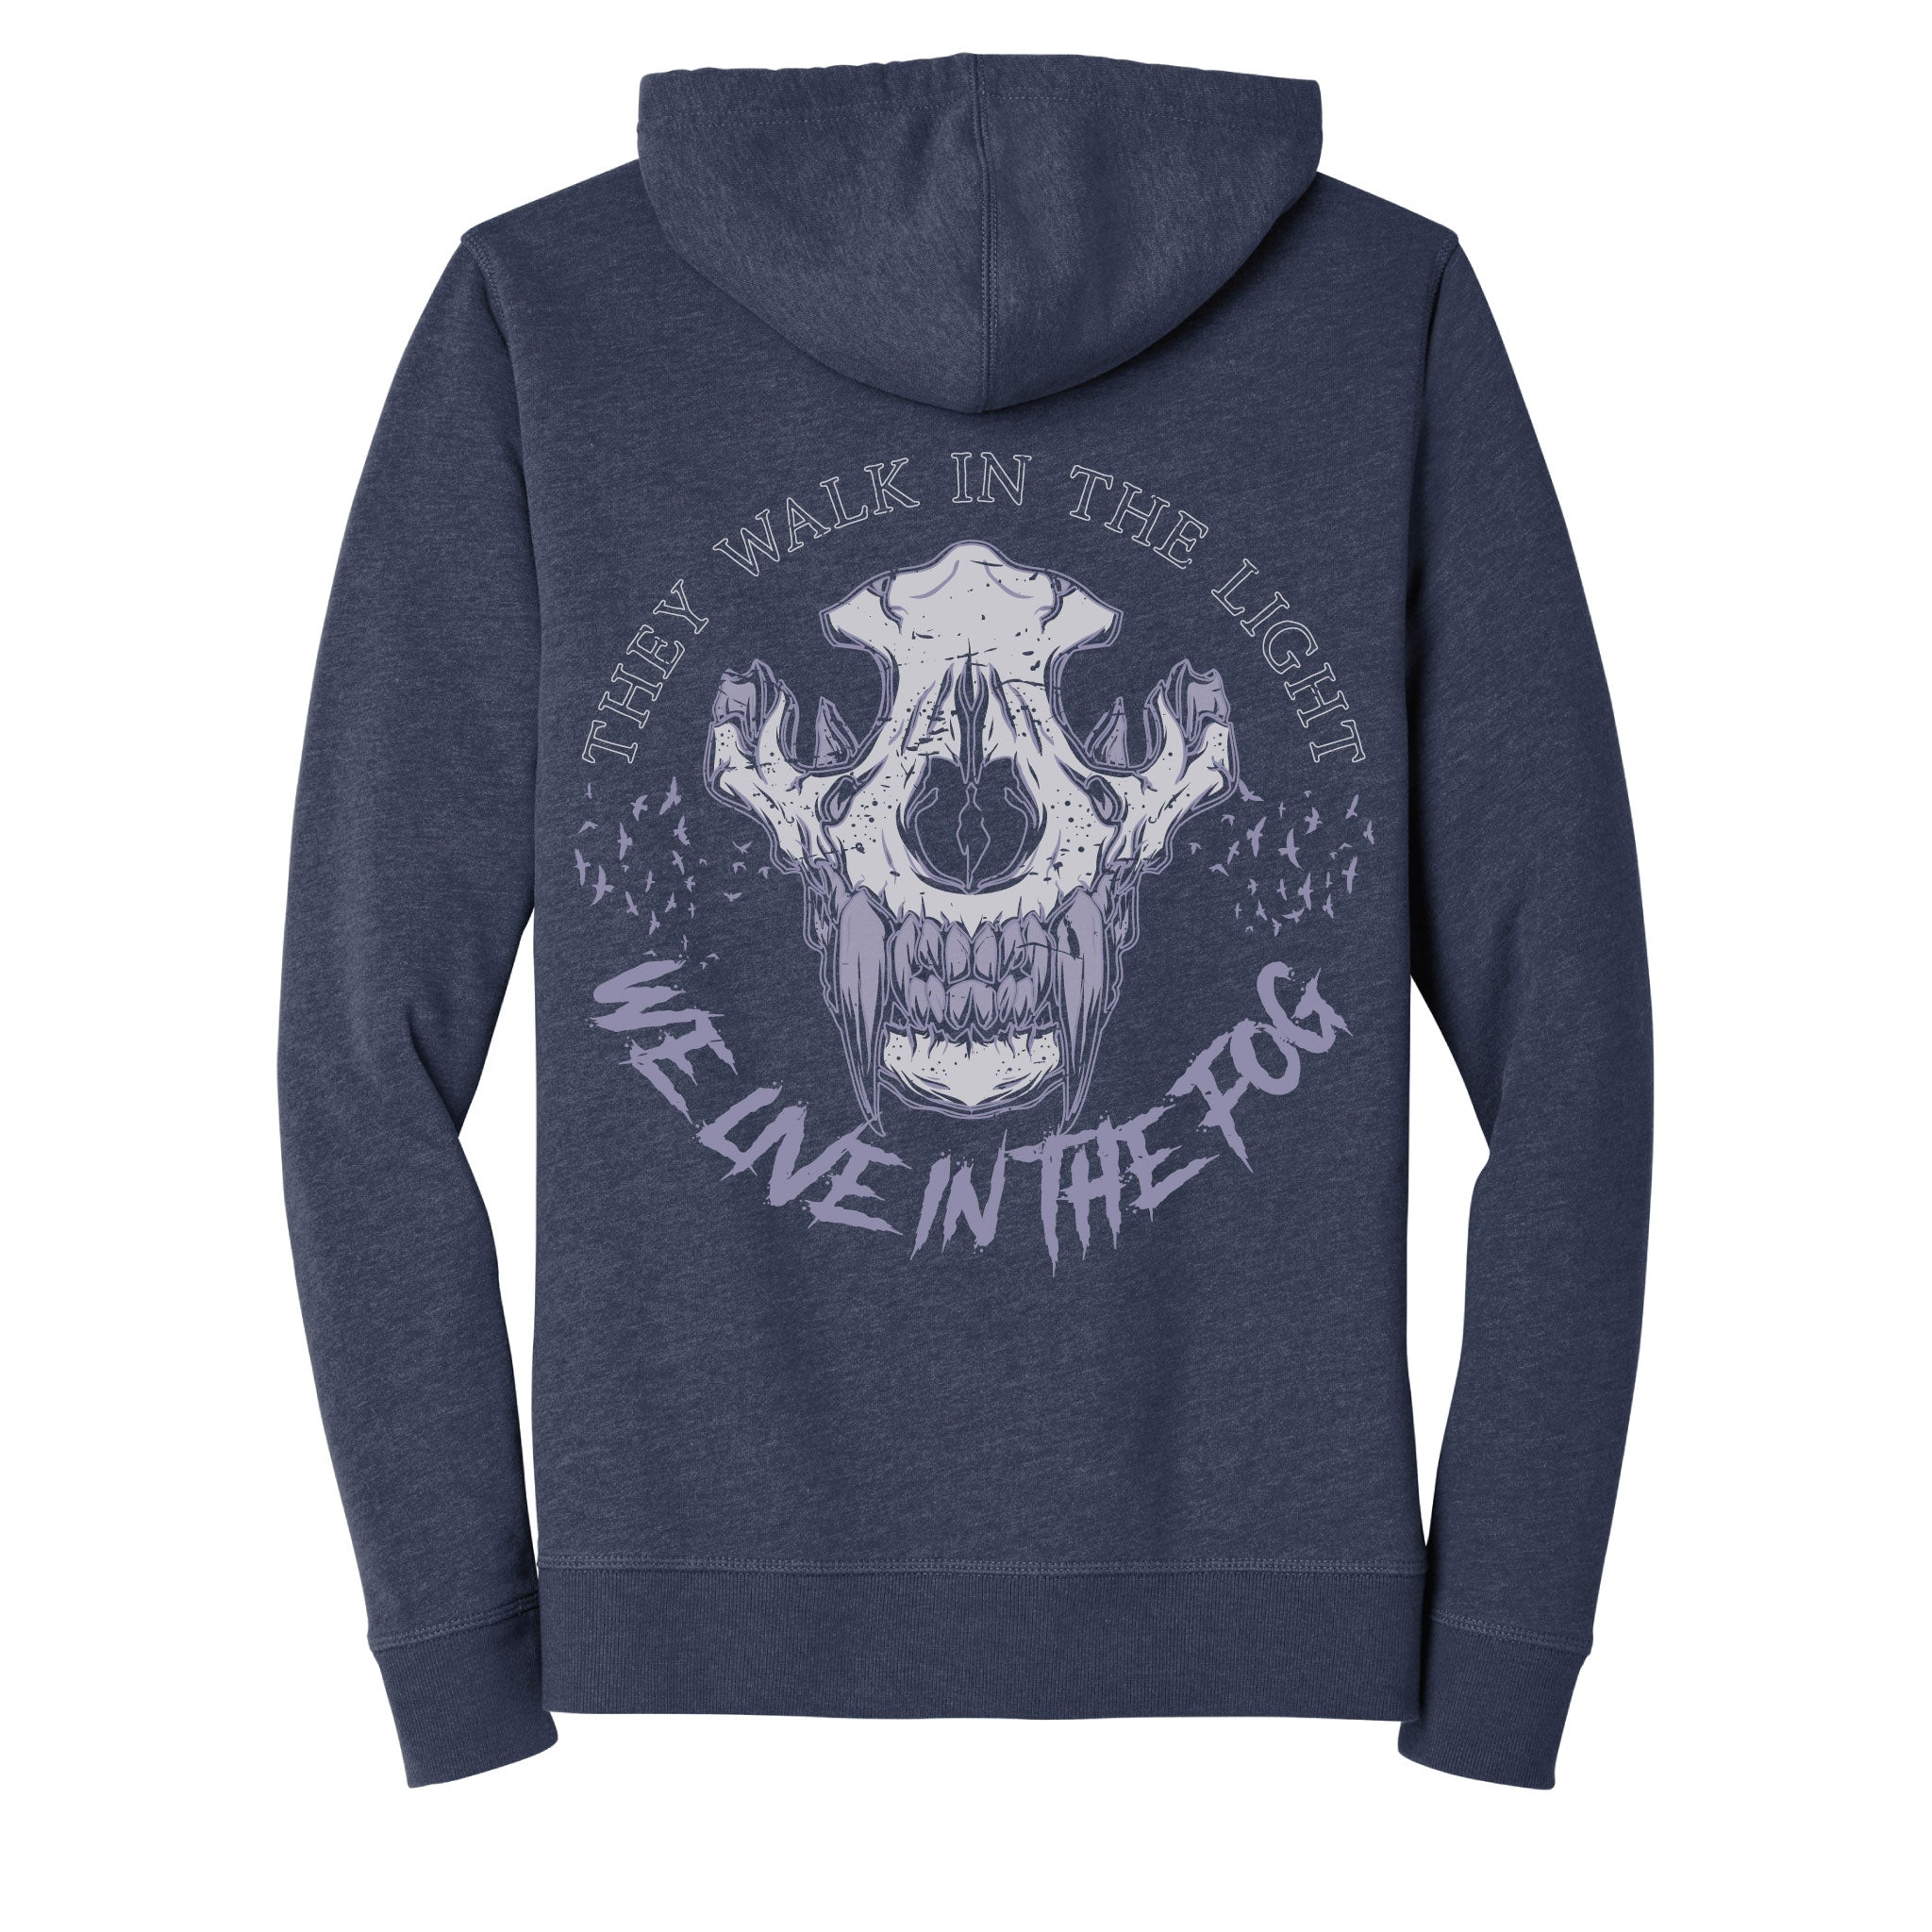 WE LIVE IN THE FOG Hoodie